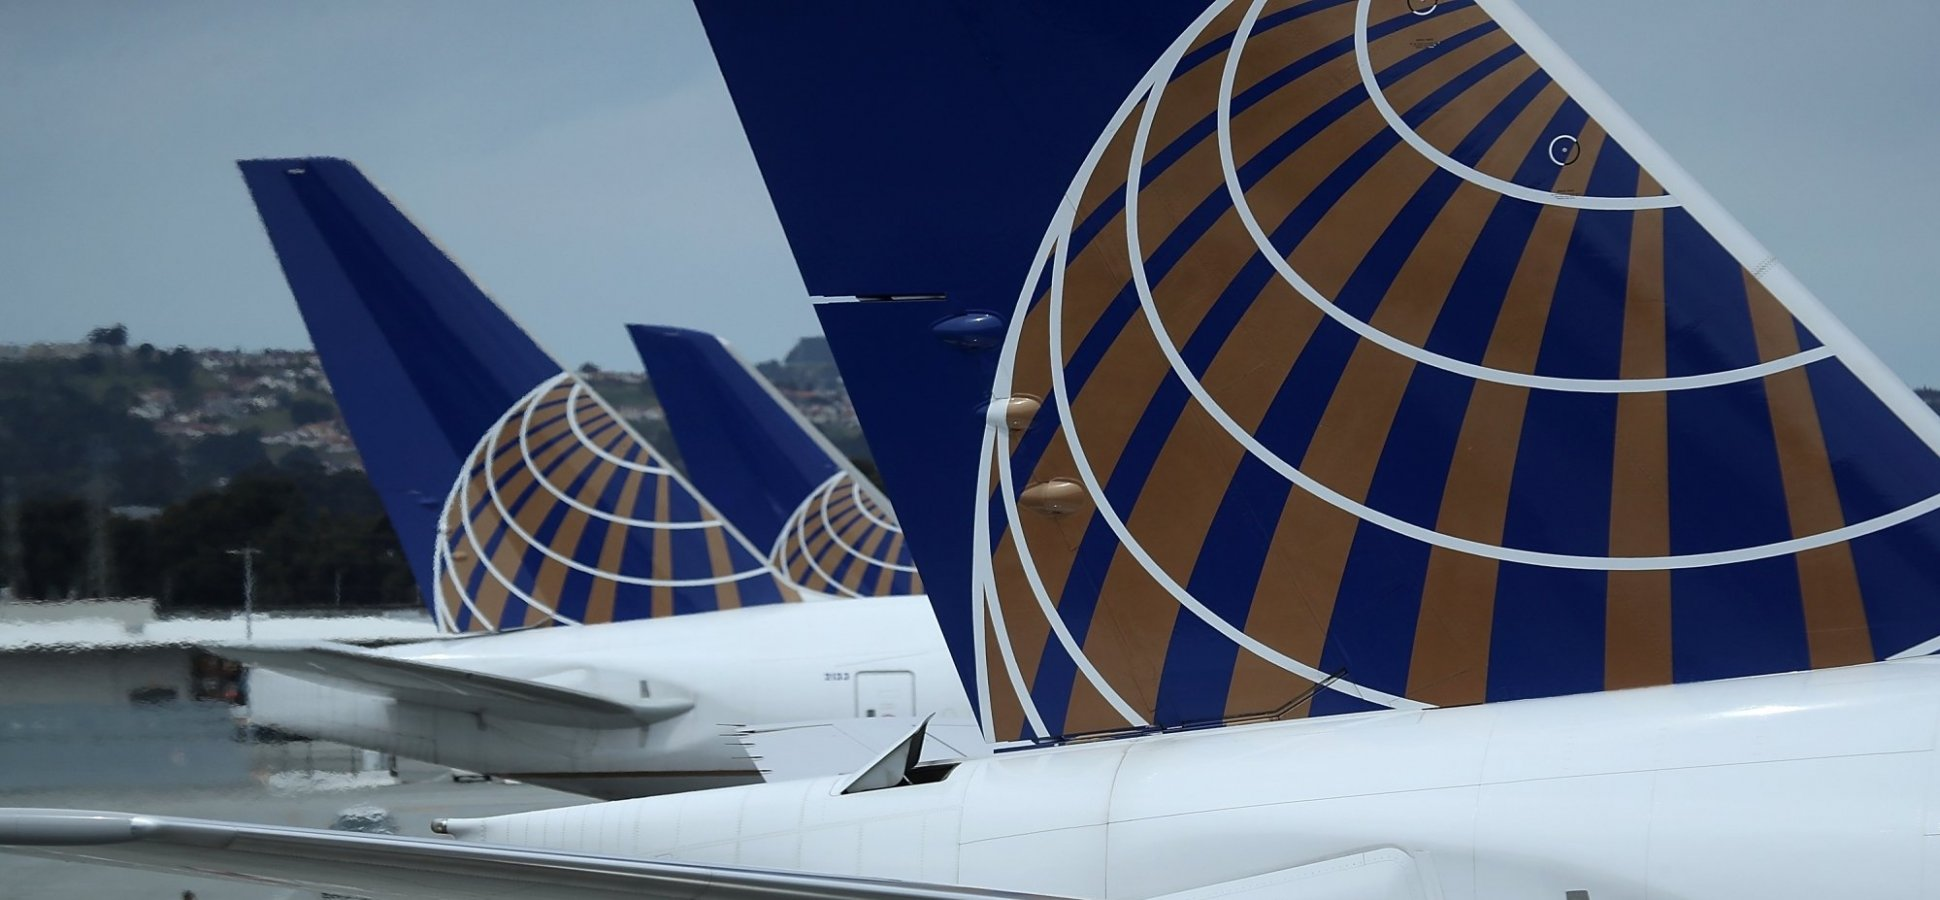 Airline matchmaking